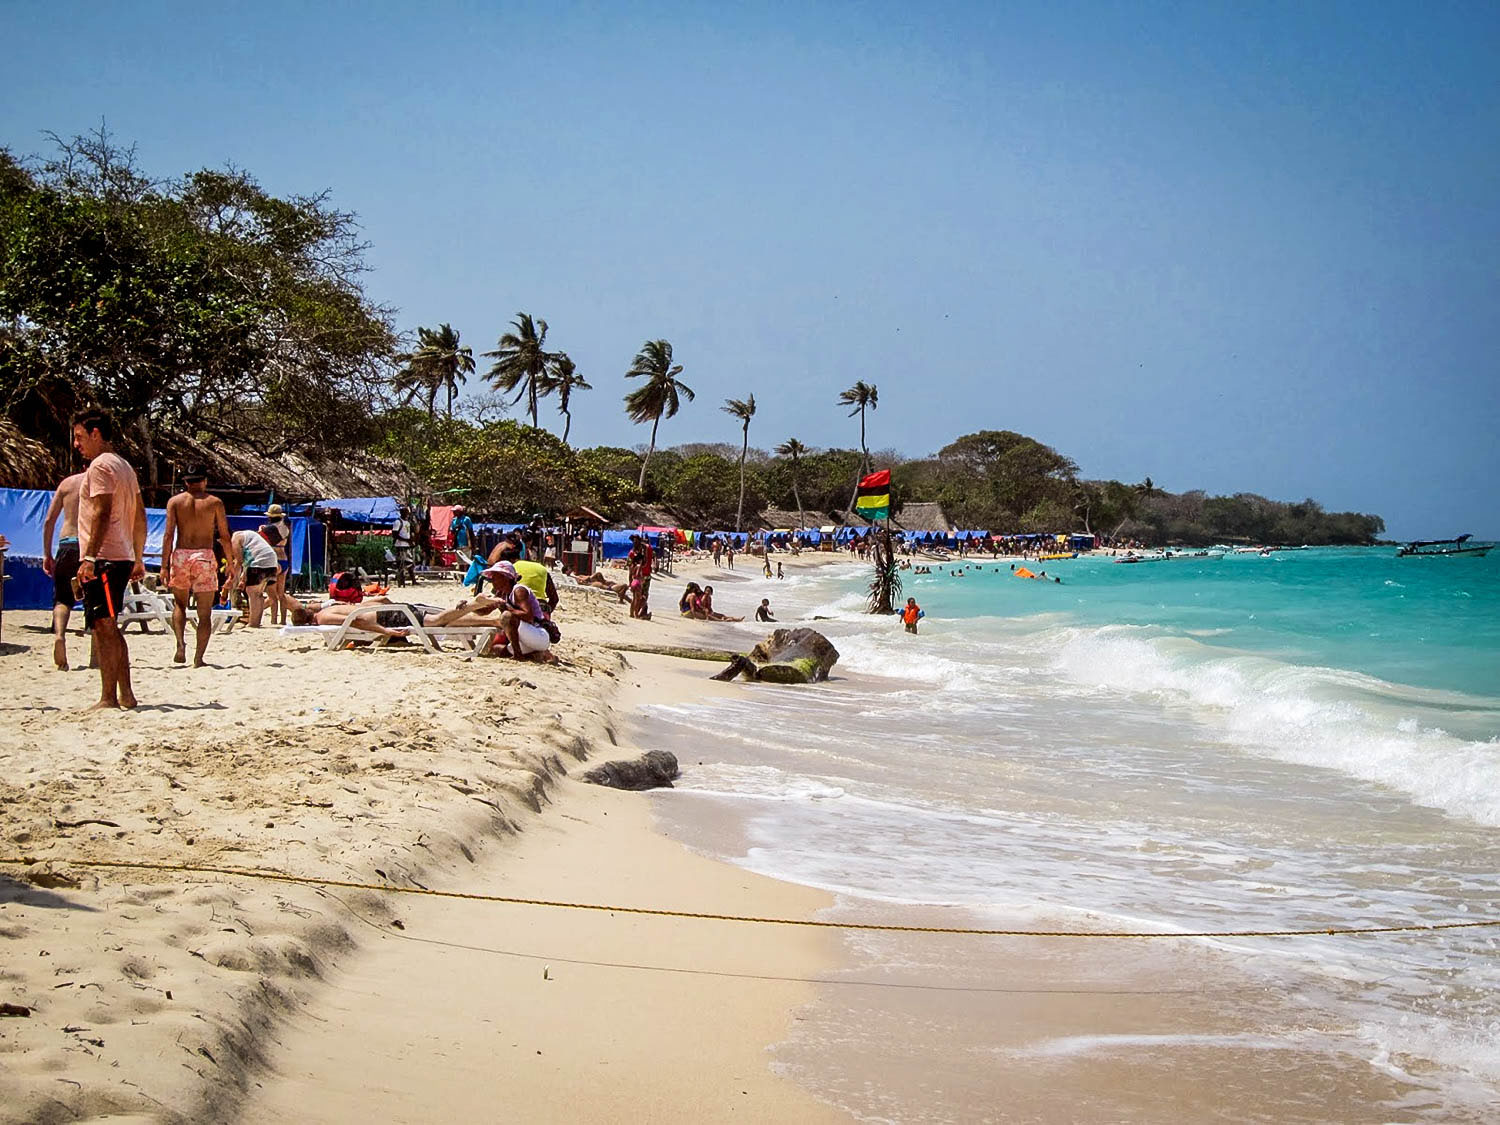 Rosario Islands: Read This Before You Go to Playa Blanca